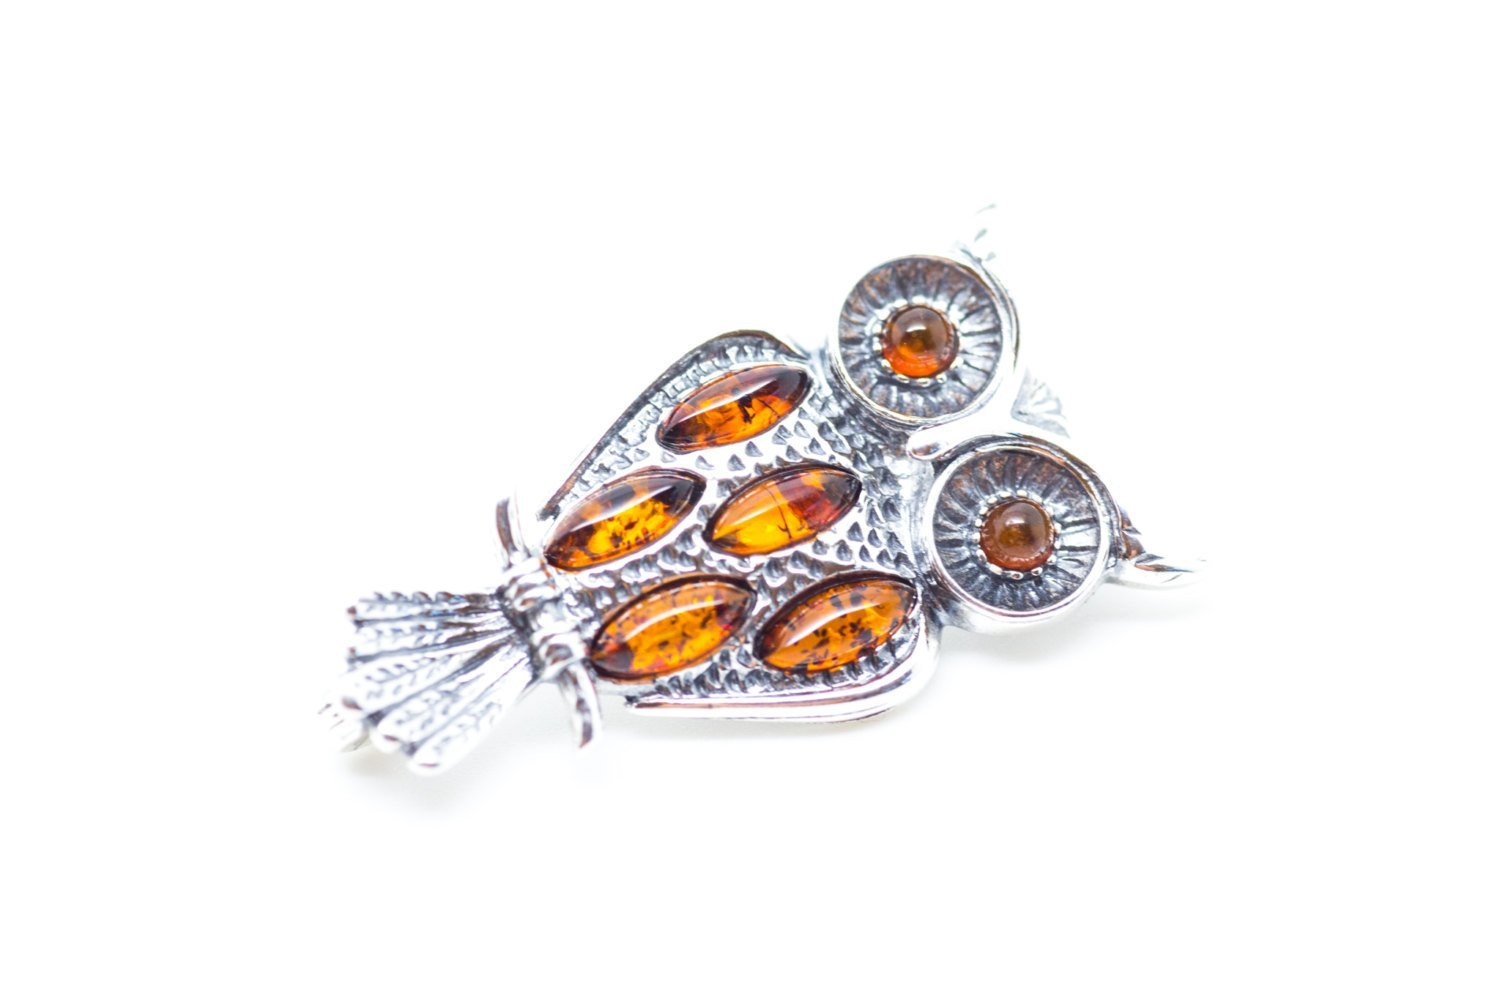 31a51d630 Silver & Amber Owl Brooch - Amber Jewellery by Baltic Beauty